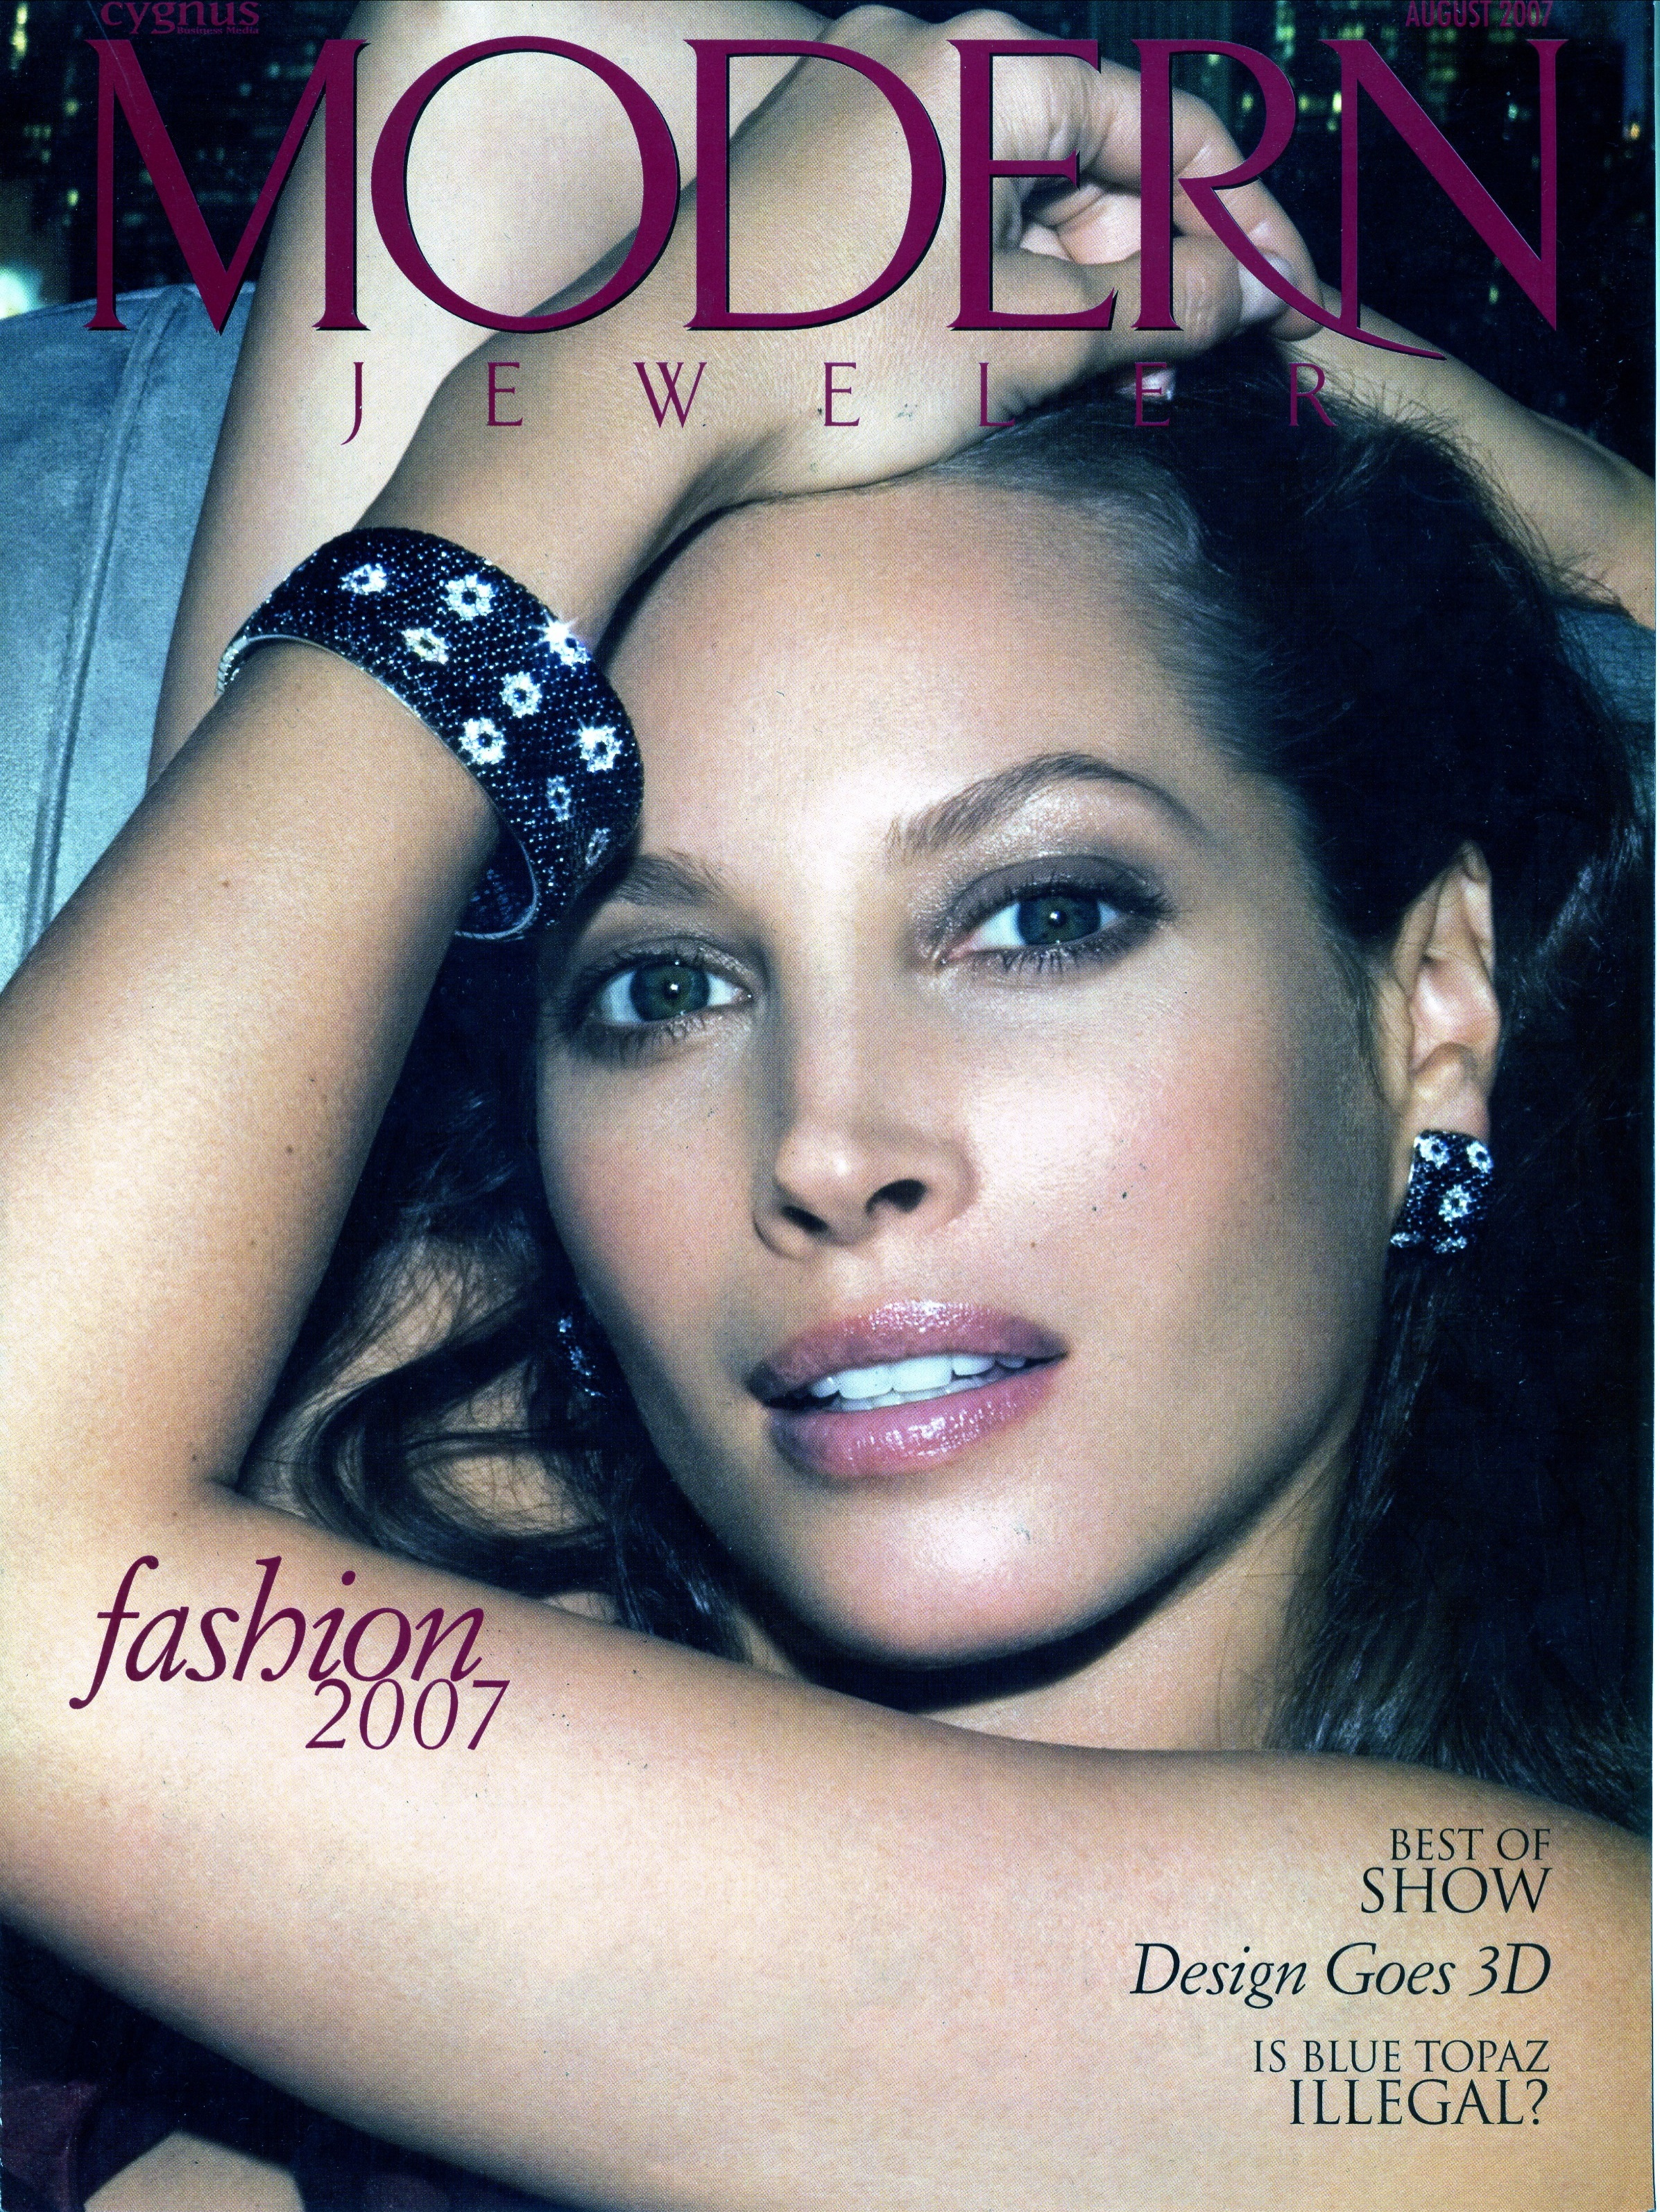 modern jeweler cover aug 07.jpg